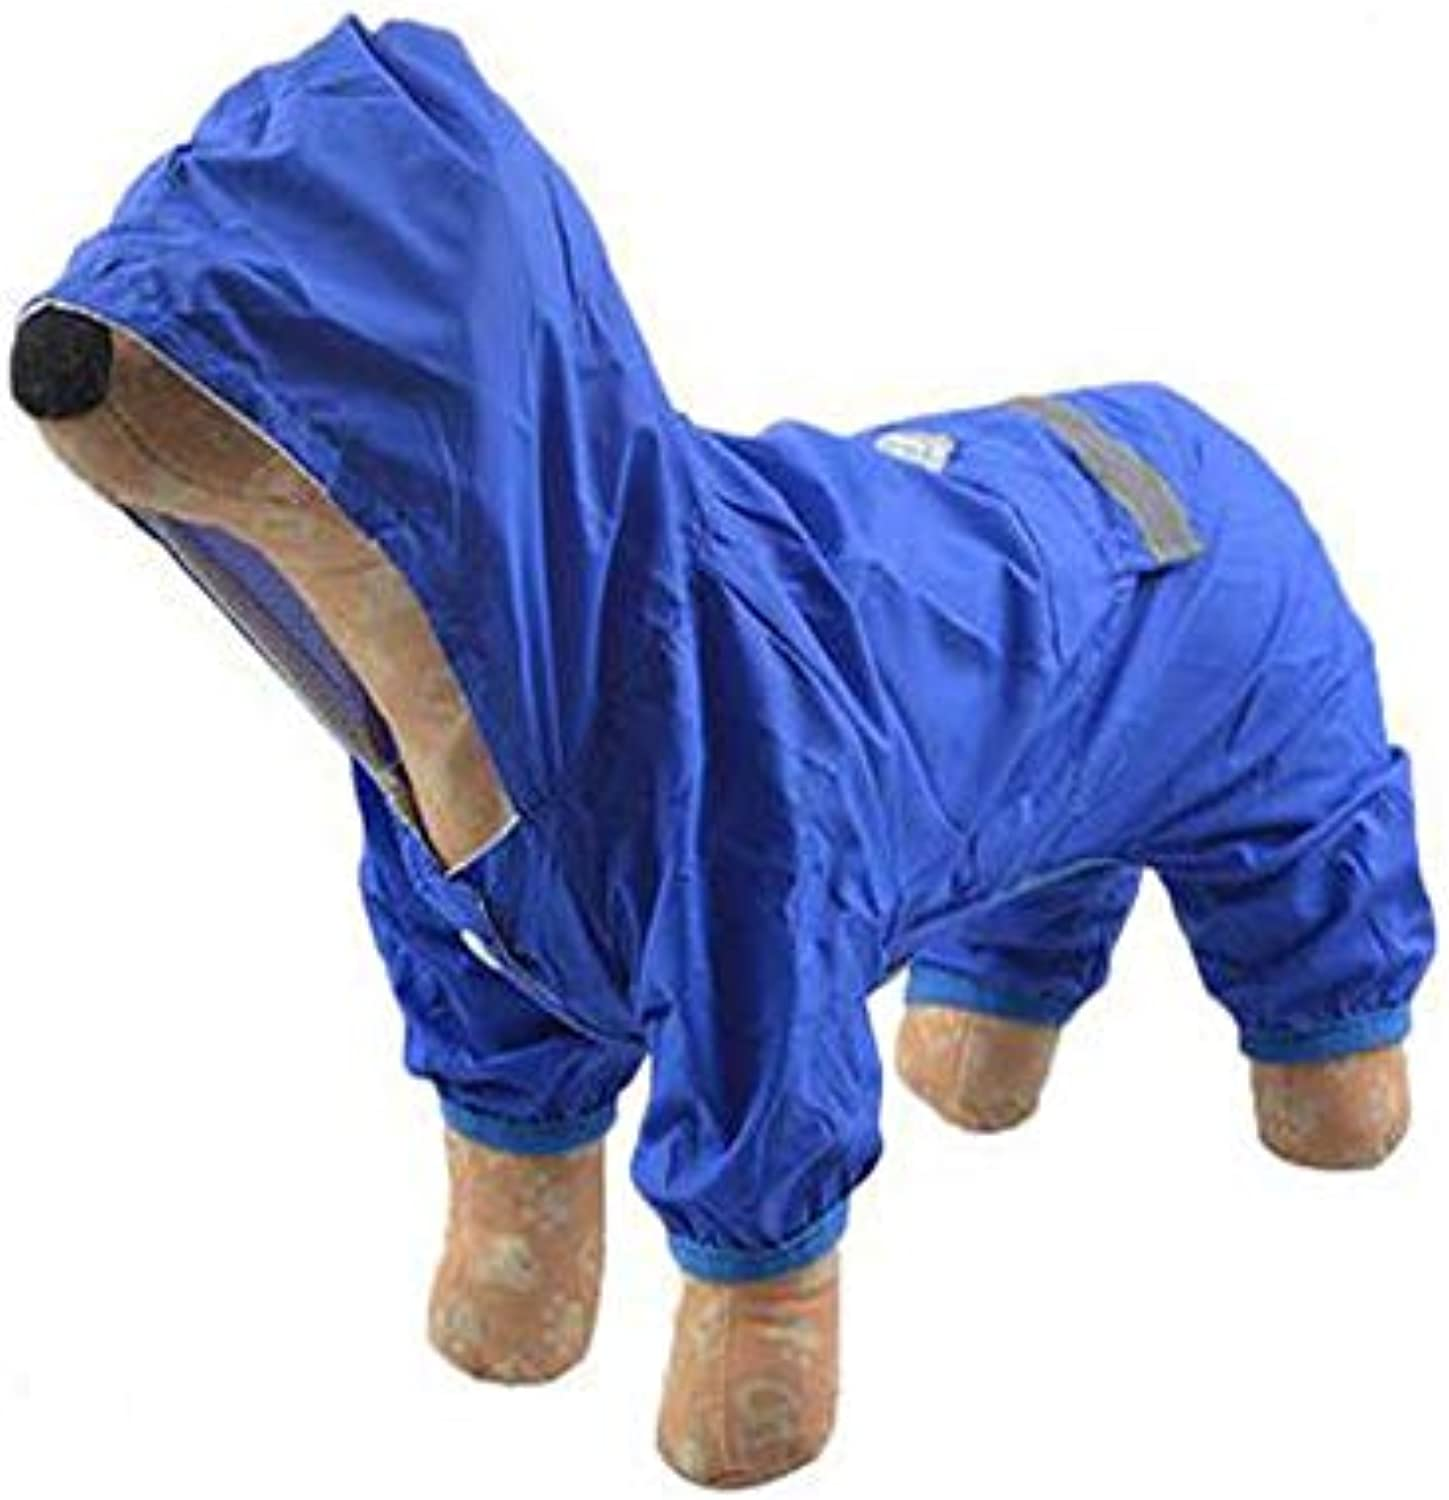 Chenjinxiang01 Pet Dog Raincoat, Medium and Small Dogs, Windproof Waterproof Warm Hoodie Delicate (color   bluee, Size   S)